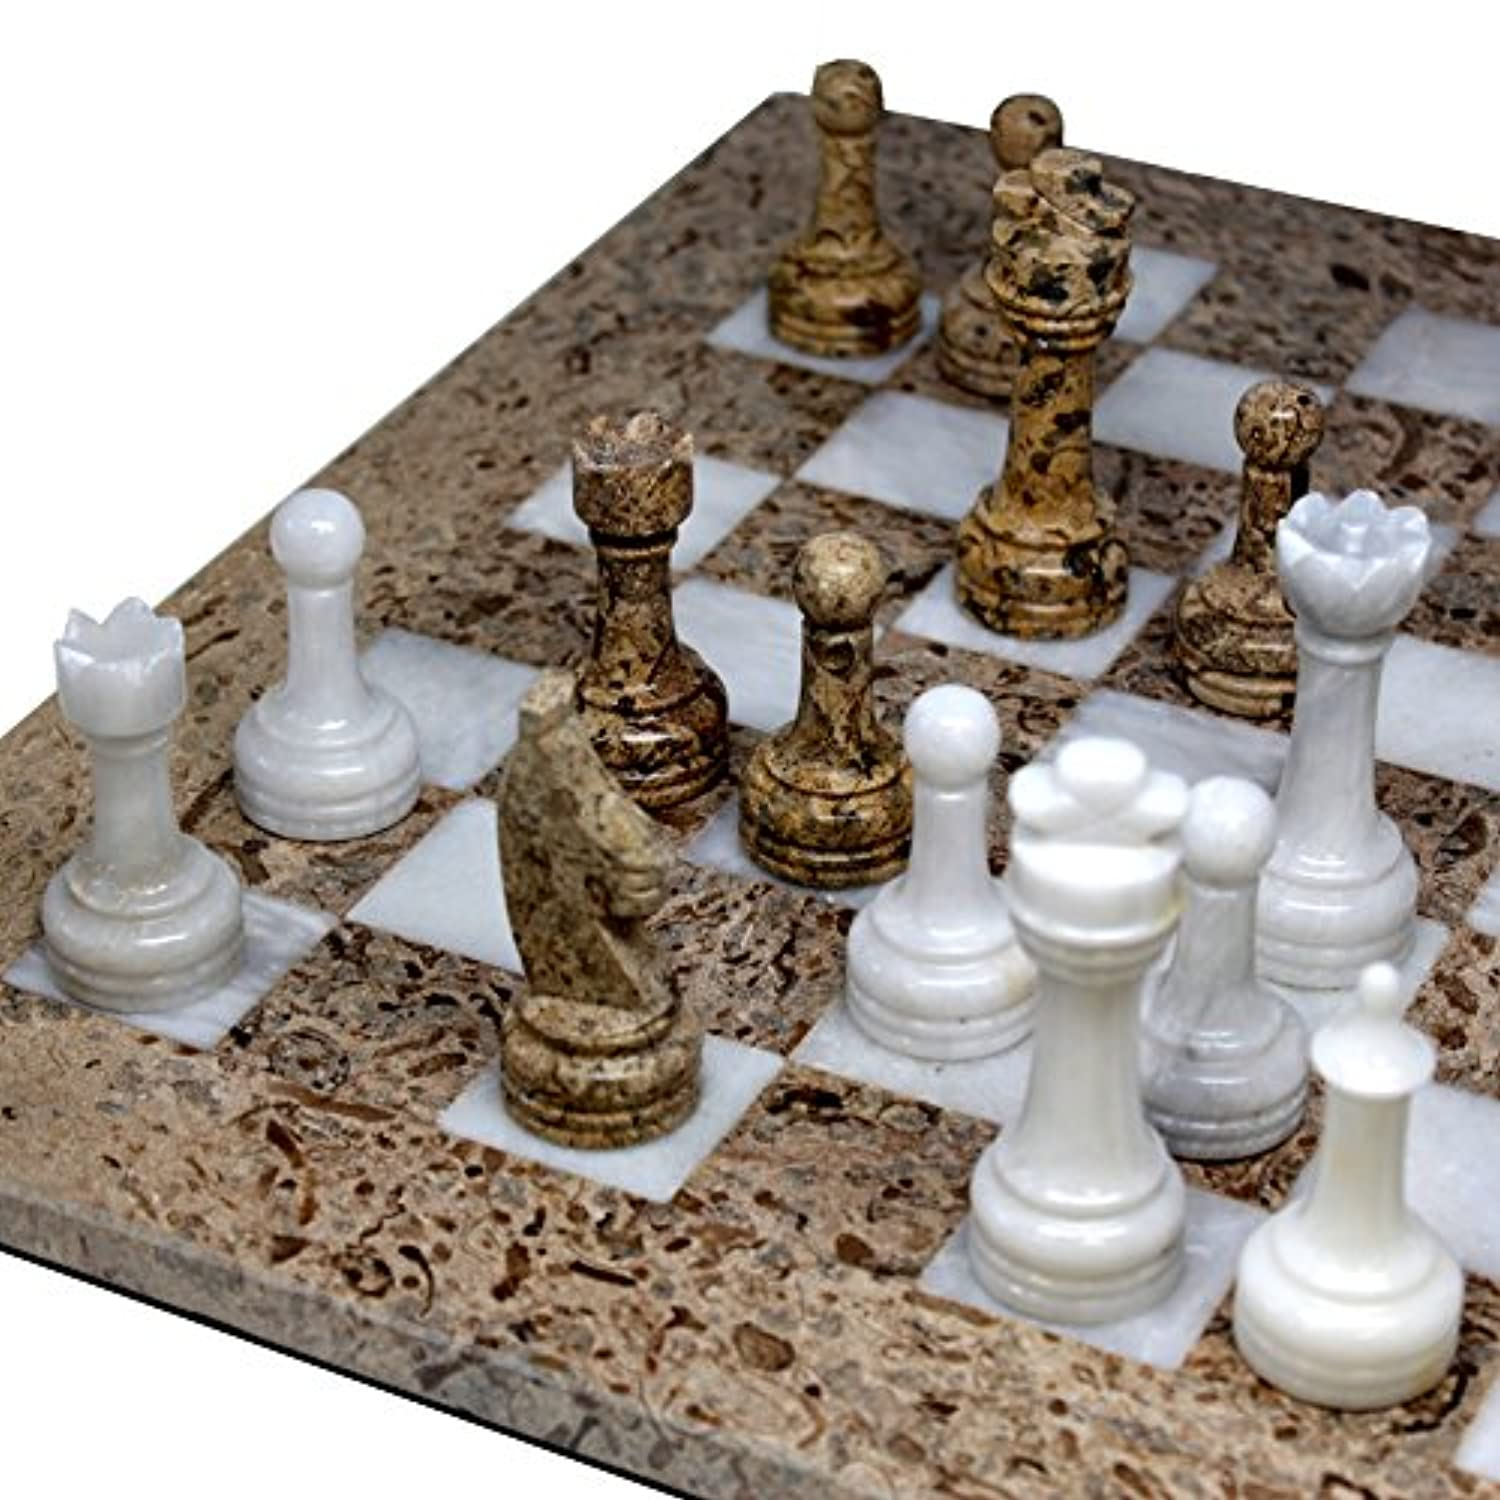 16 x 16 inch Unique Hand Carved Fossil Coral Stone & White Onyx Marble Chess Set - Including Complementary Velvet Case!